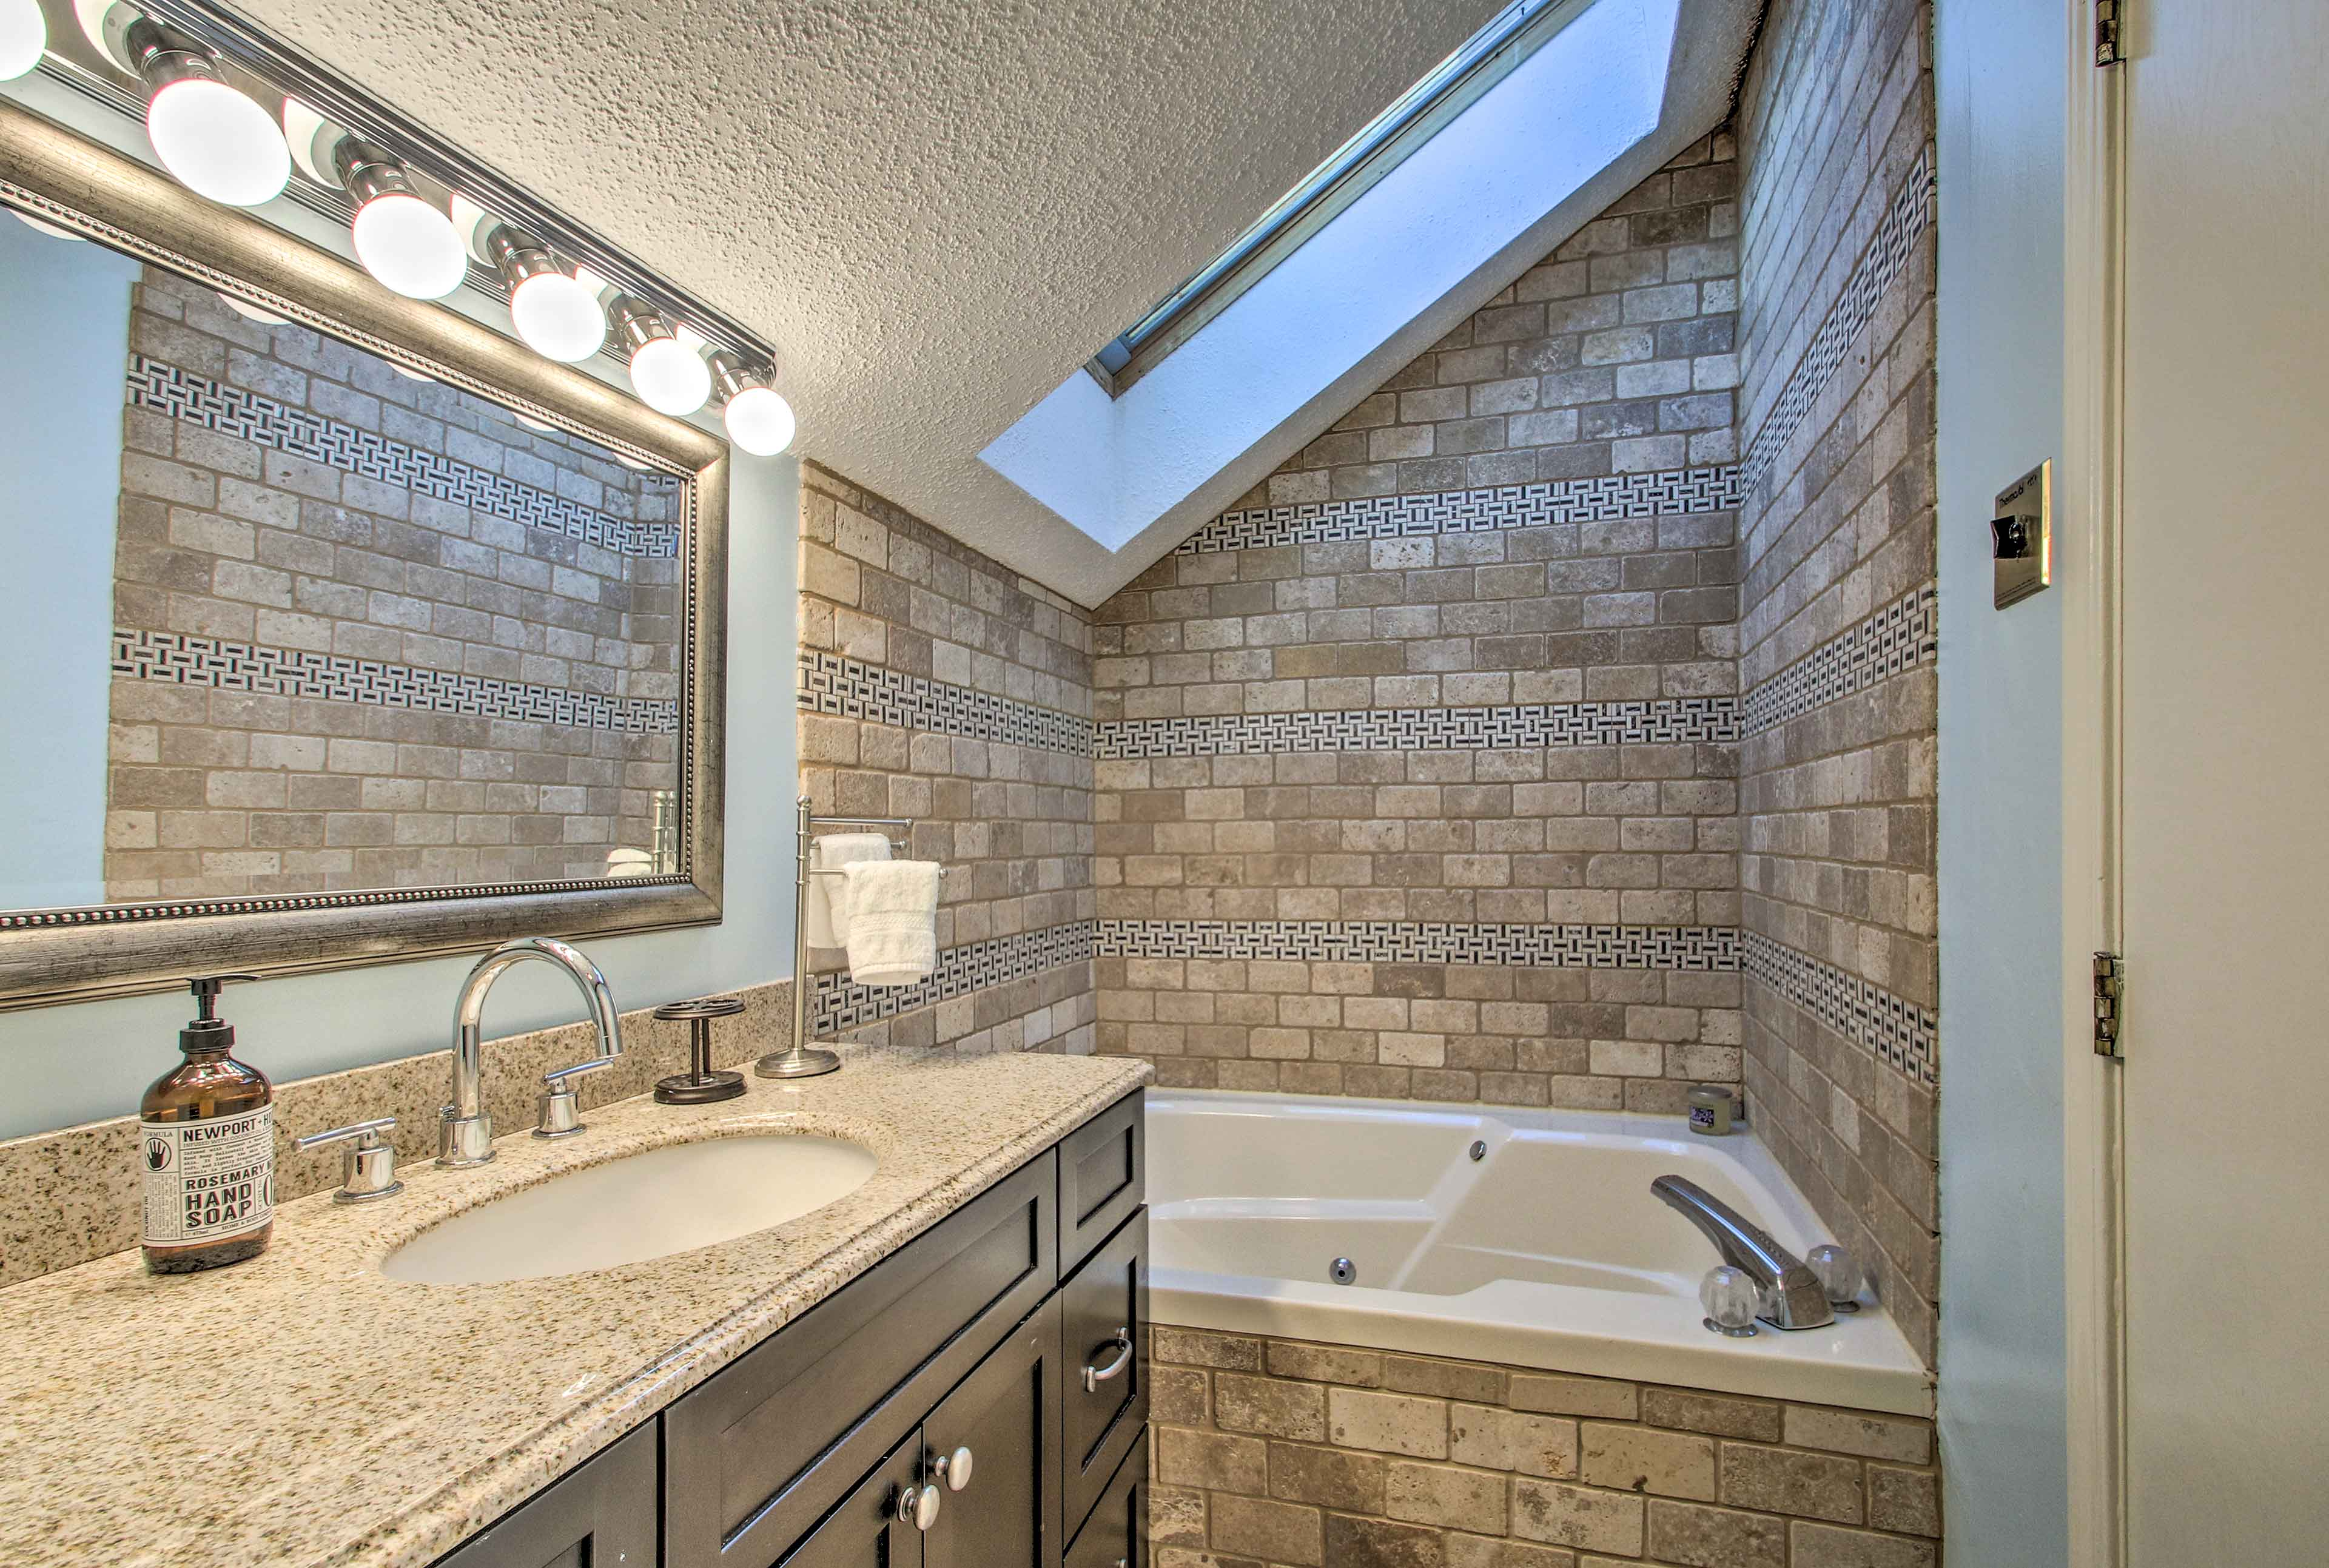 Treat yourself to a soak in the 2-person Jacuzzi tub under the skylight.